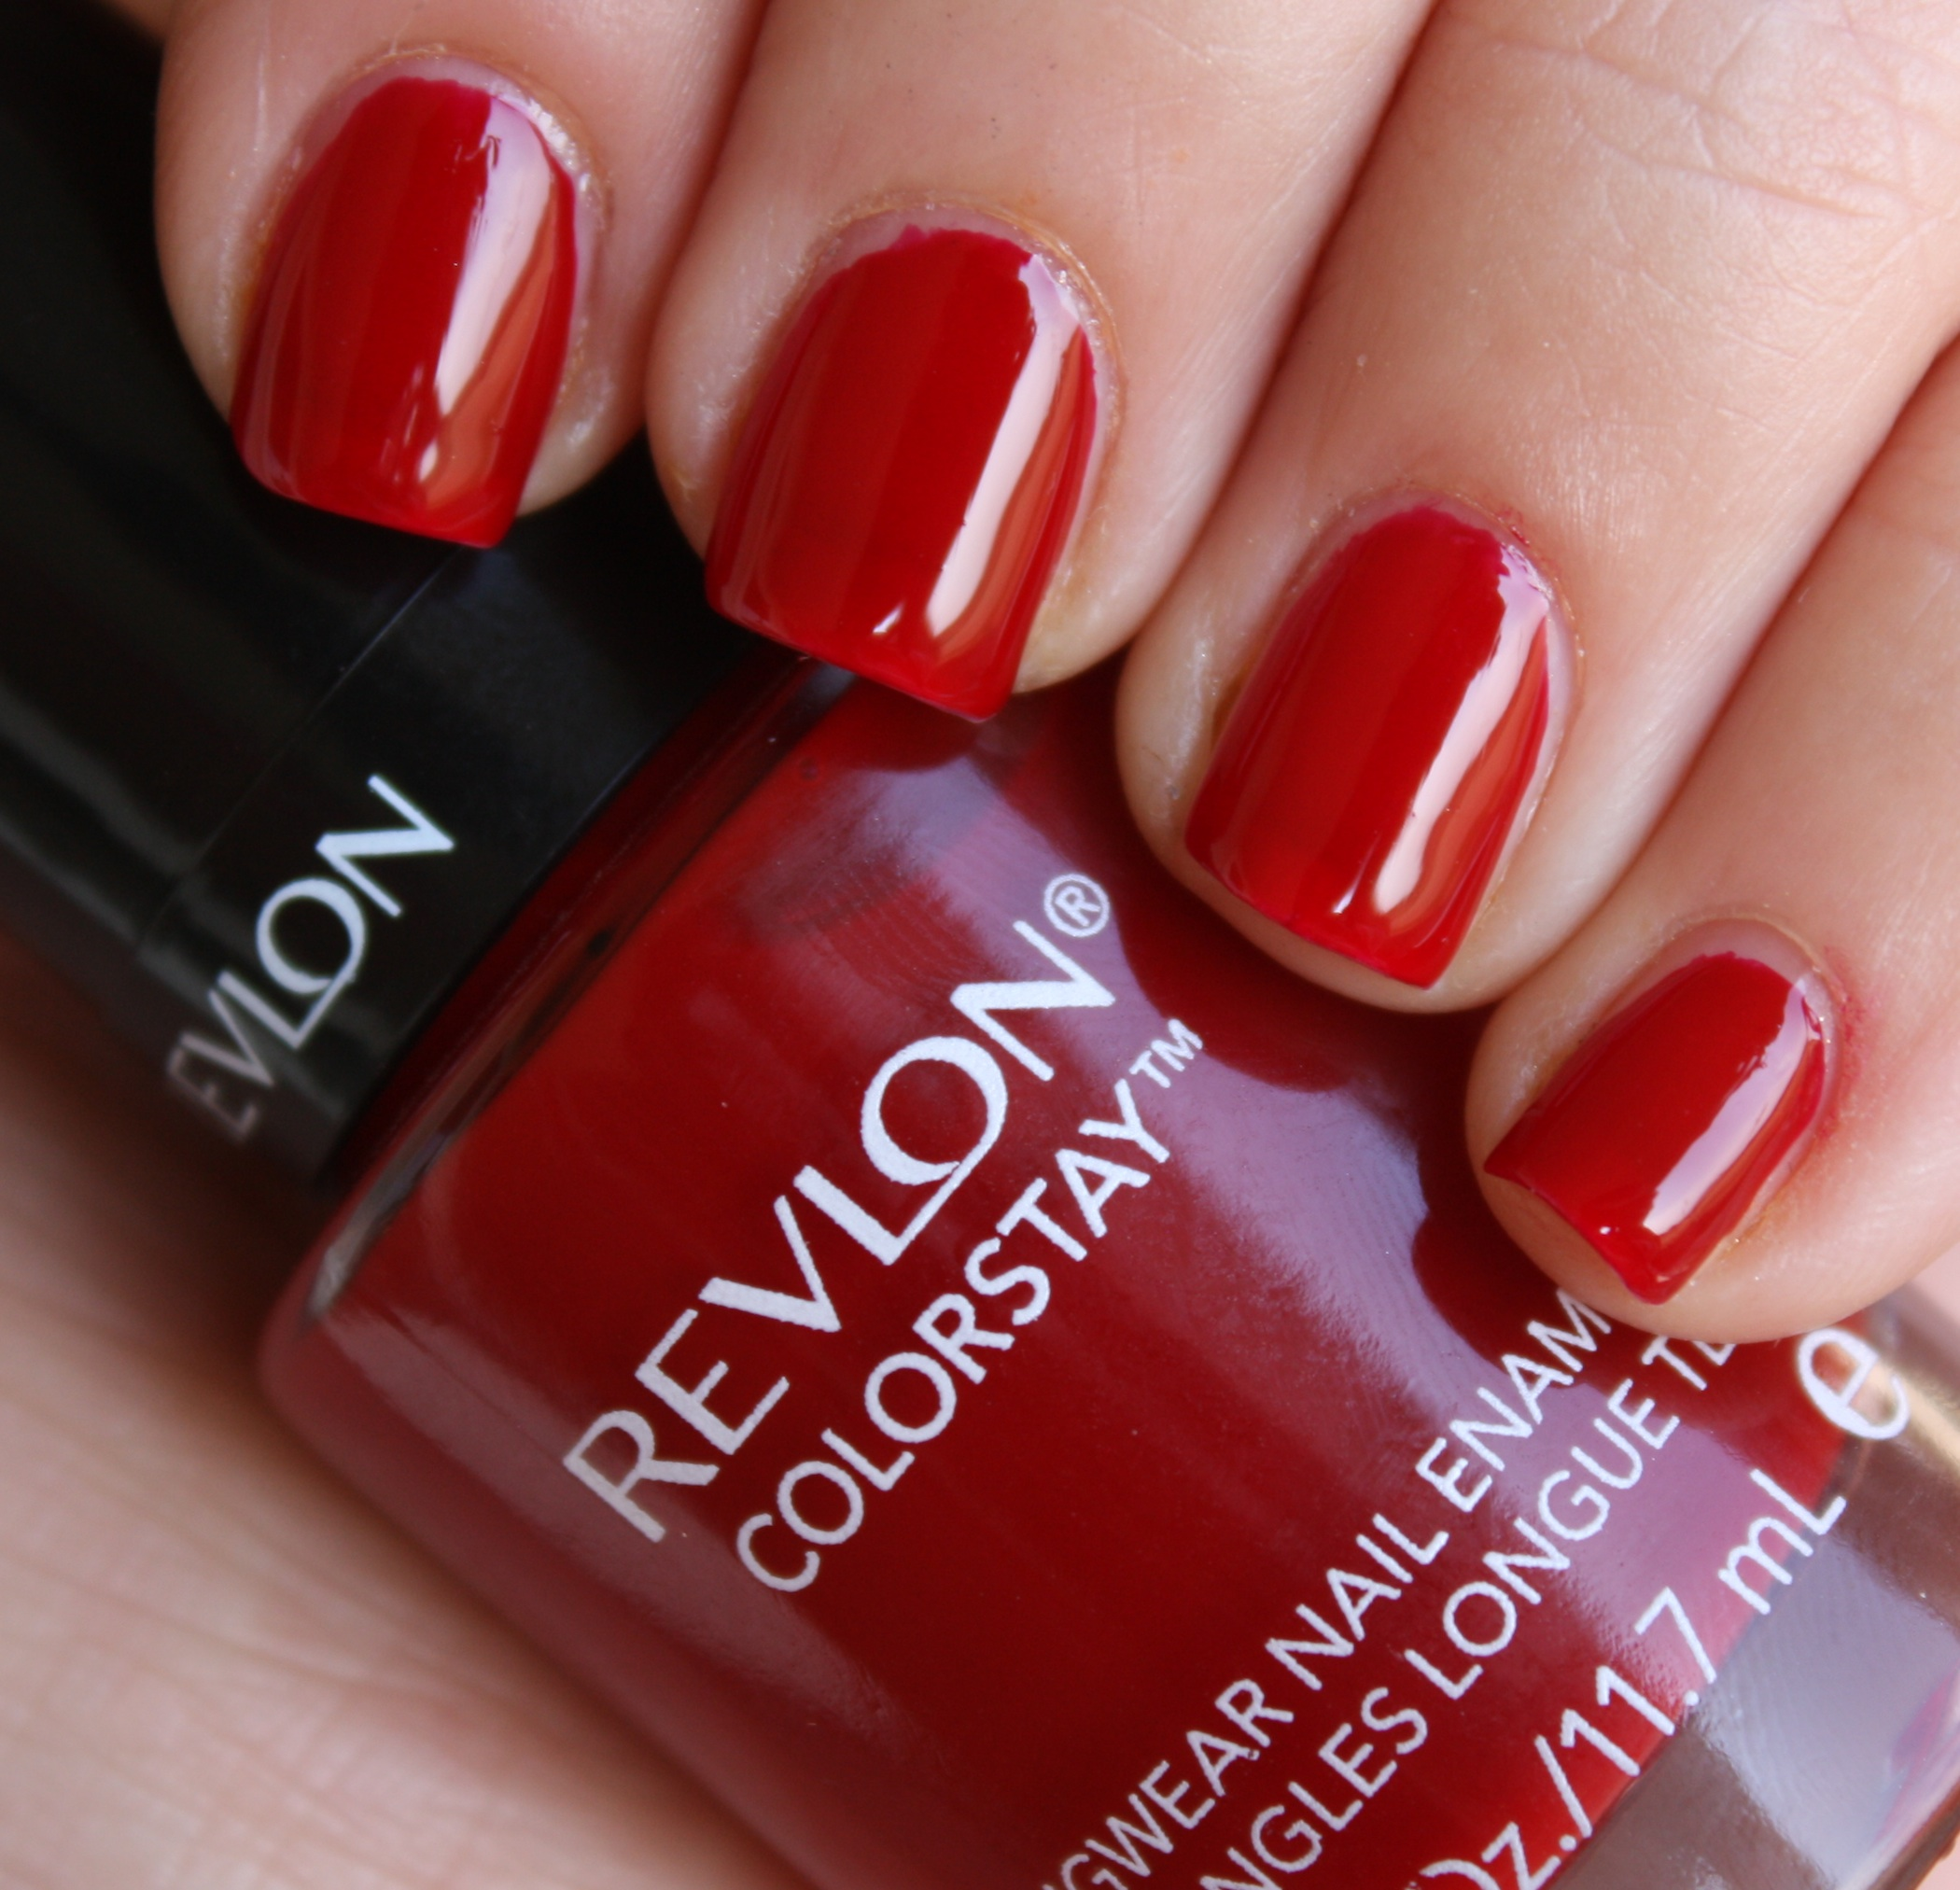 Revlon Velvet Rope – horrendous color